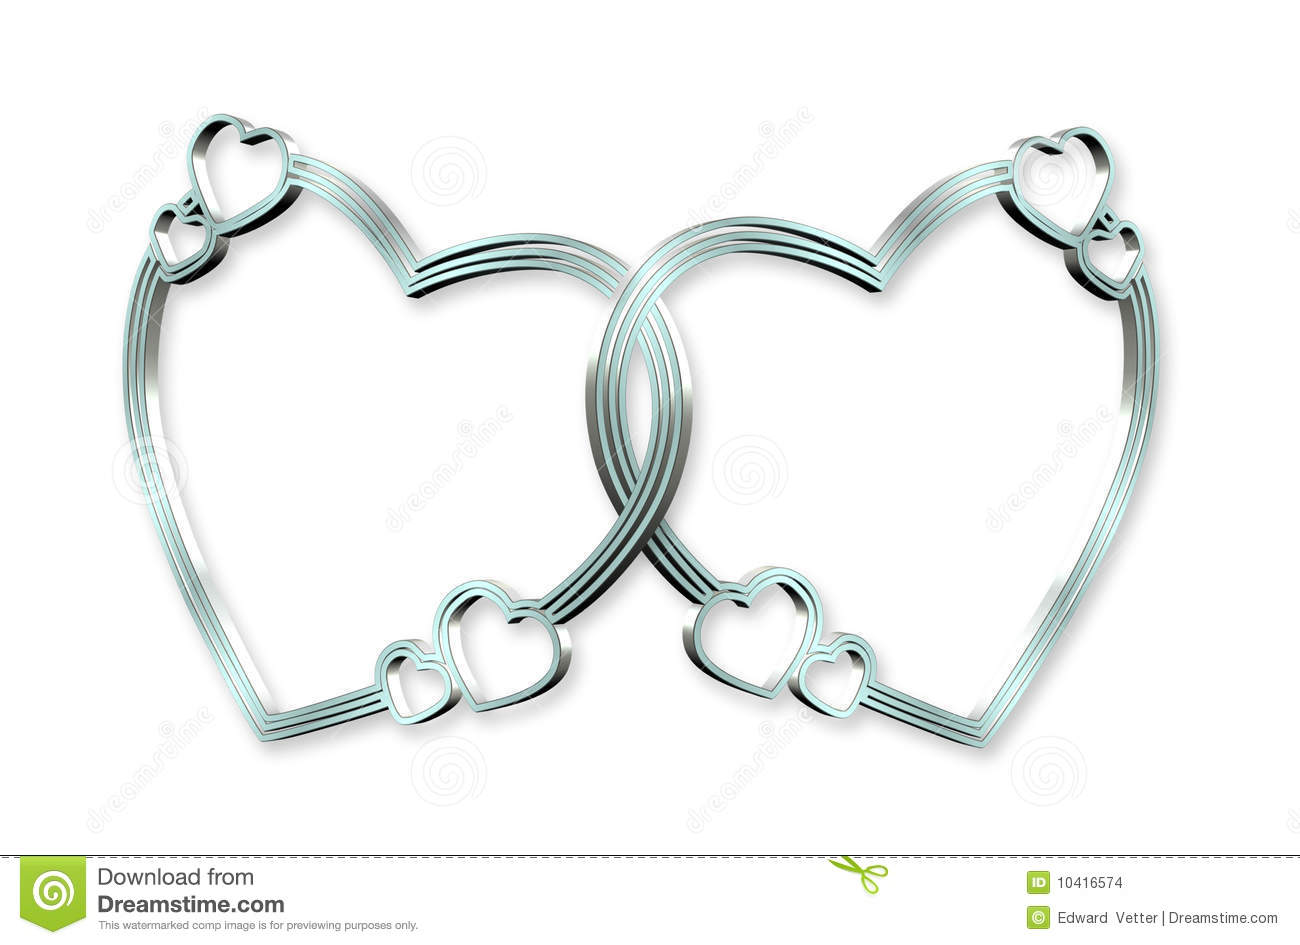 3Dimensional linked silver hearts clip art or design element on white ...